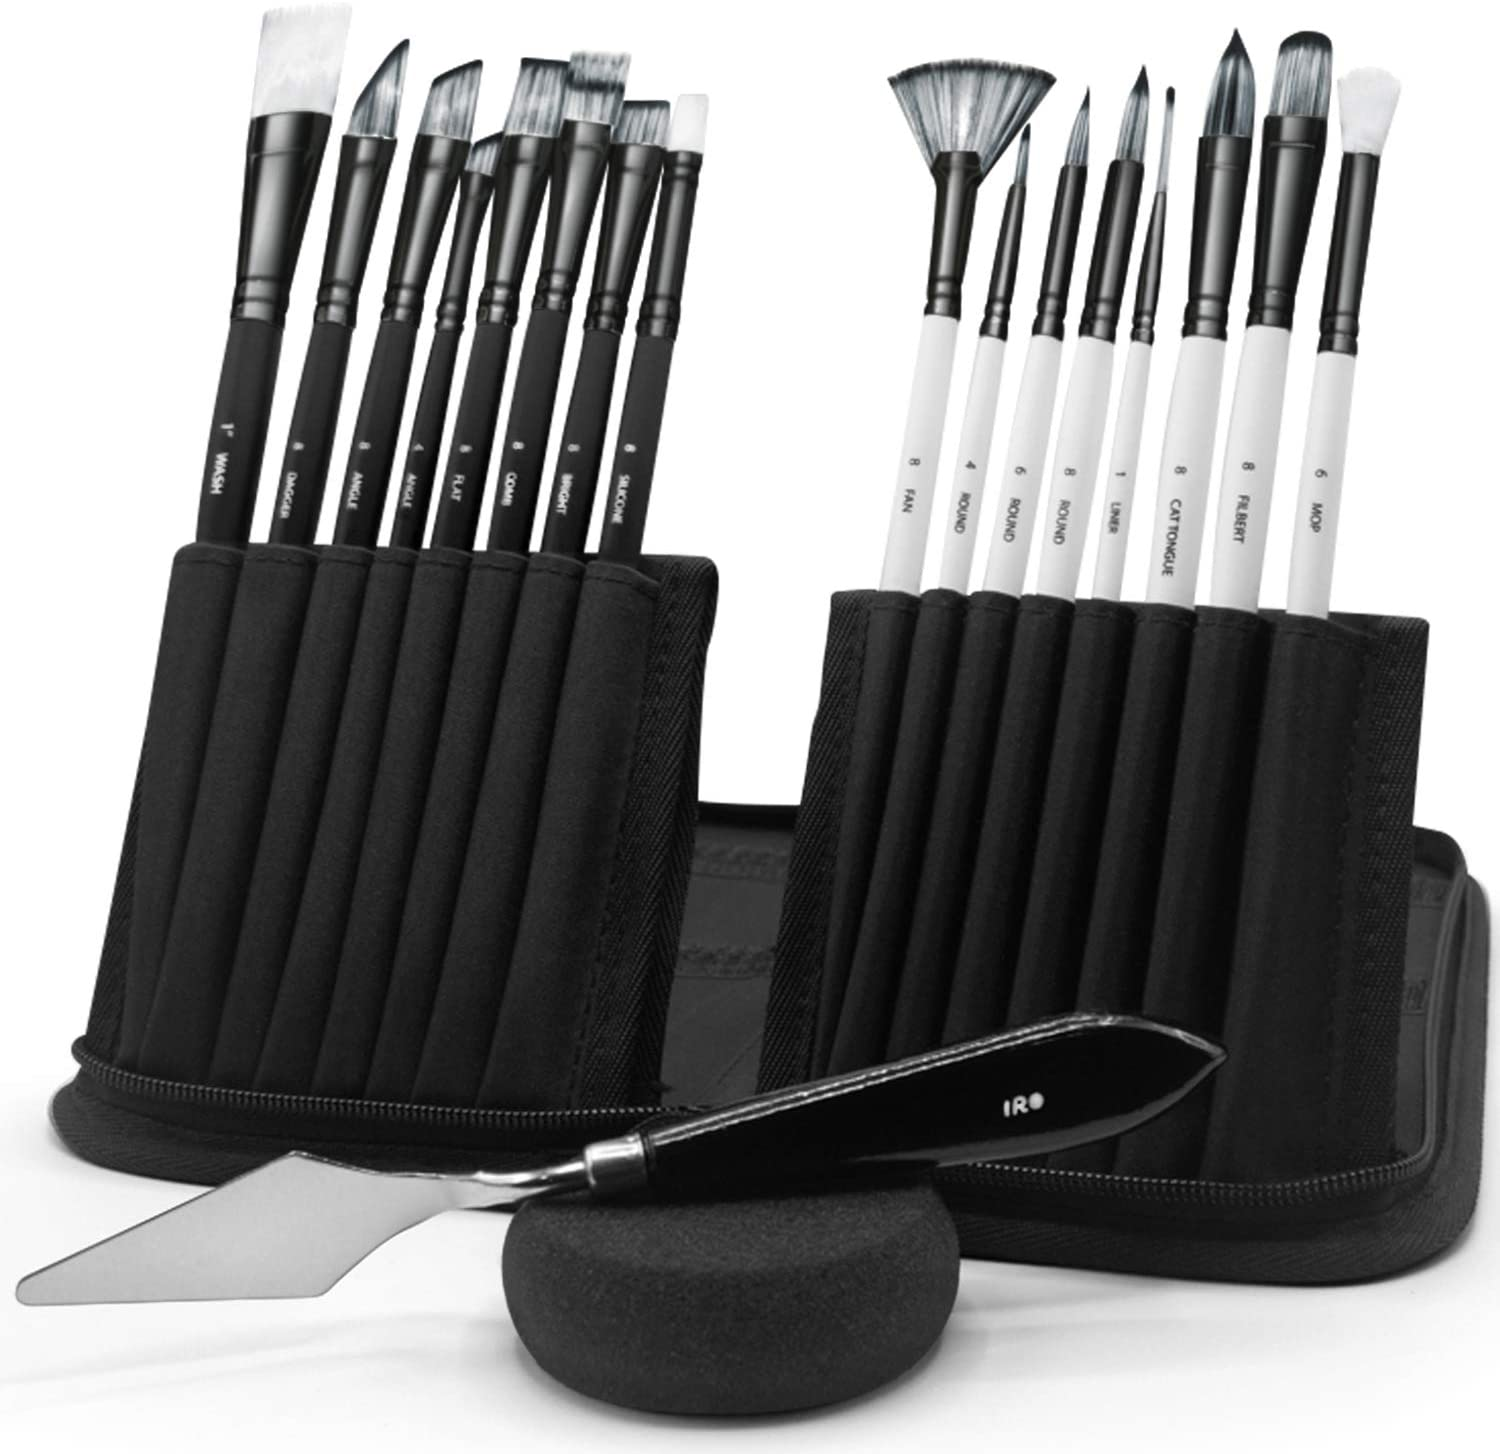 IRO Artist Paint Brush Set of 15 + 1. Flat and Round Art Brushes for Acrylic, Watercolor, Gouache, Oil, face, Body Painting. Pallet Knife and Sponge with organizing Pop-up Case. for Adults and Kids